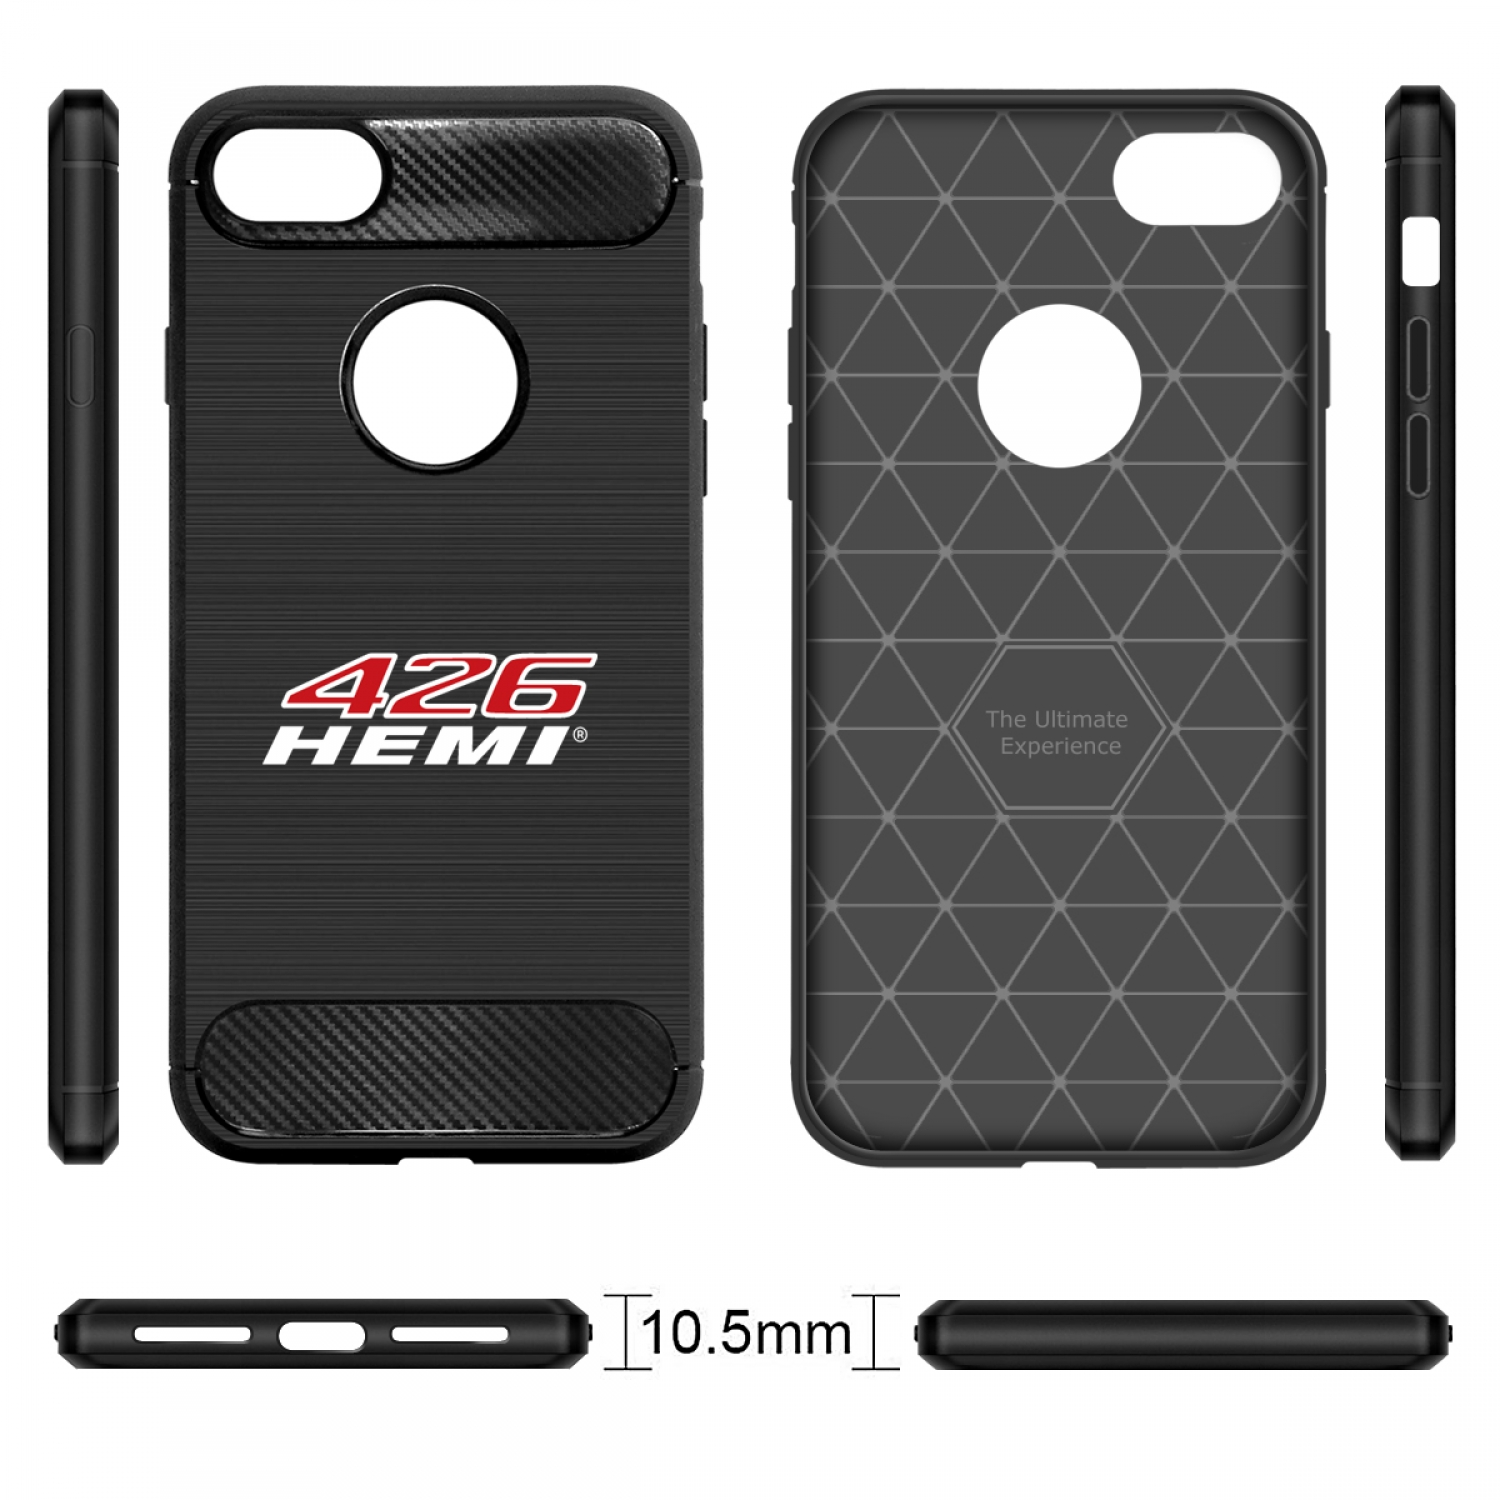 iPhone 7 Case, HEMI 426 HP Black TPU Shockproof Carbon Fiber Textures Cell Phone Case